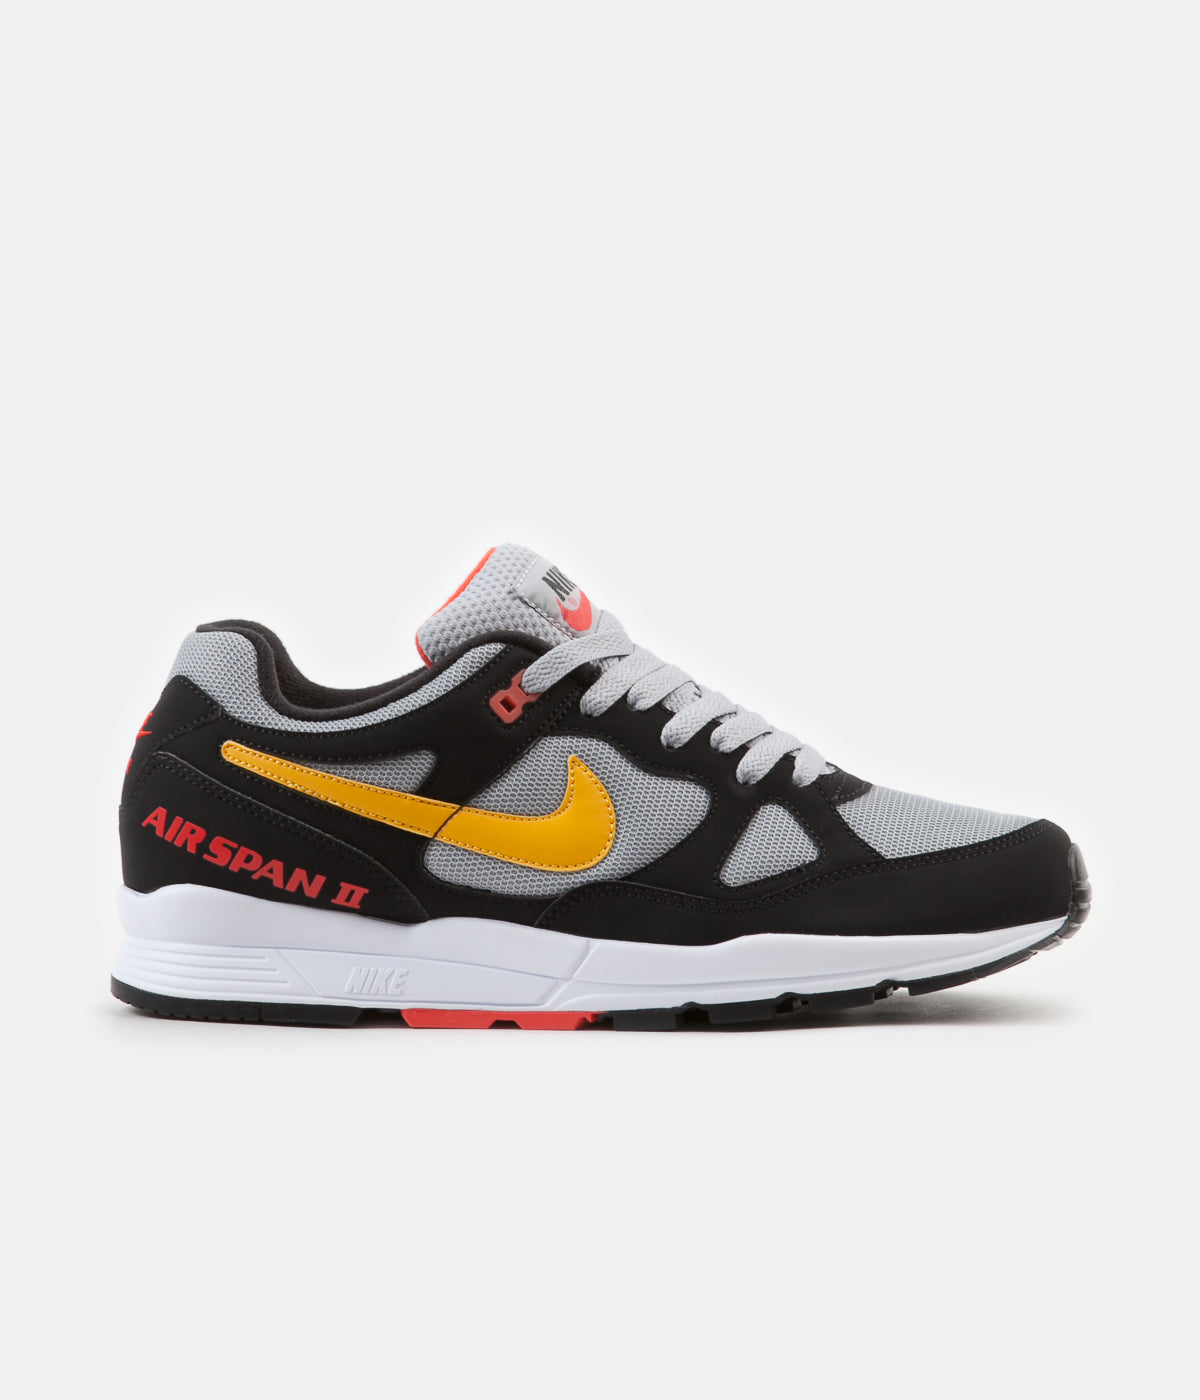 sale retailer ca8f0 6d899 ... Nike Air Span II Shoes - Black   Yellow Ochre - Wolf Grey ...